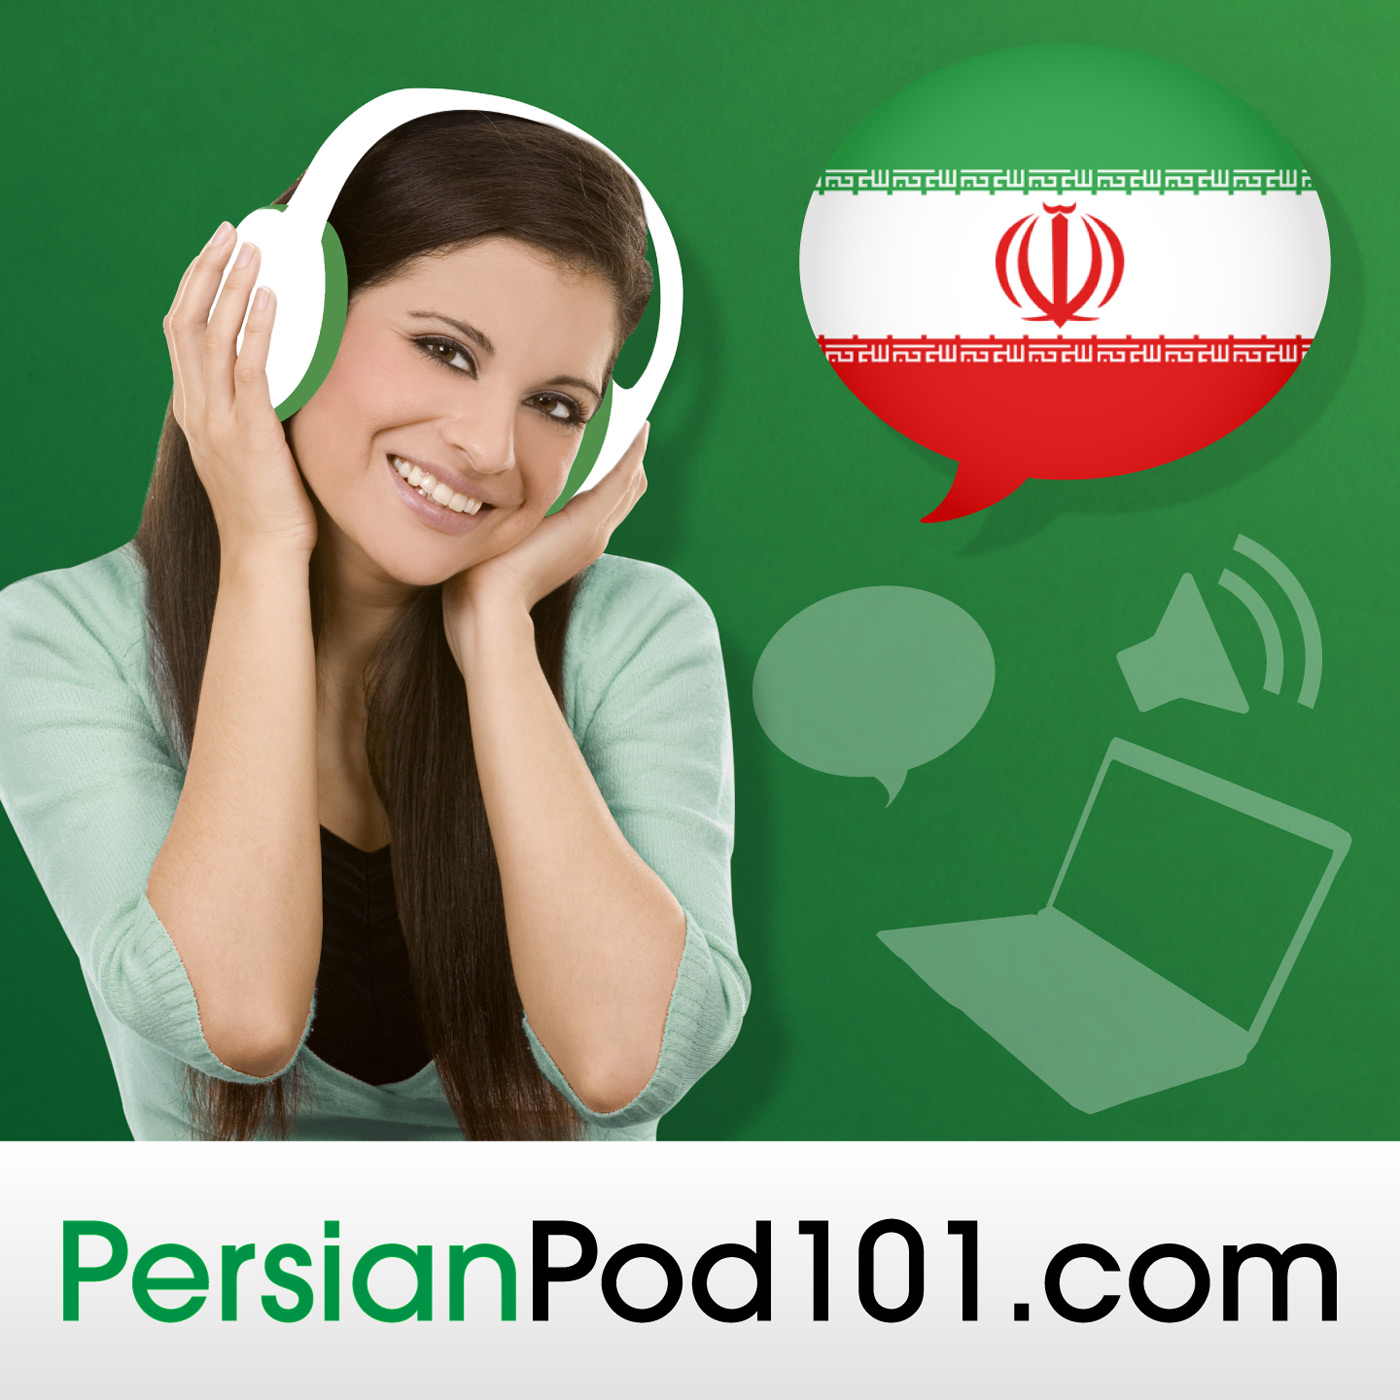 Learn Persian | PersianPod101.com